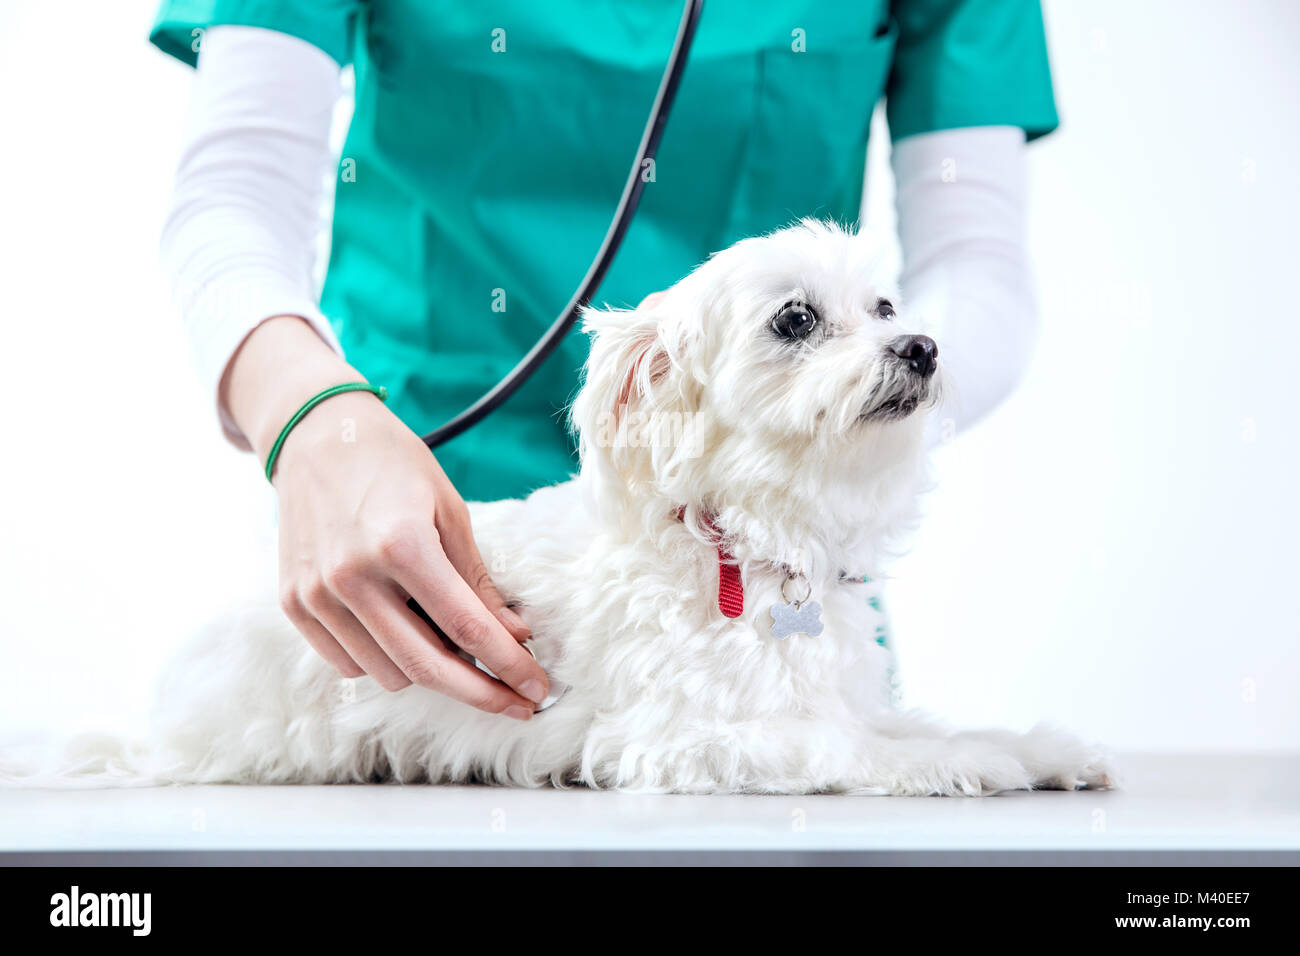 Unrecognizable vet examinates a dog using a stethoscope - Stock Image